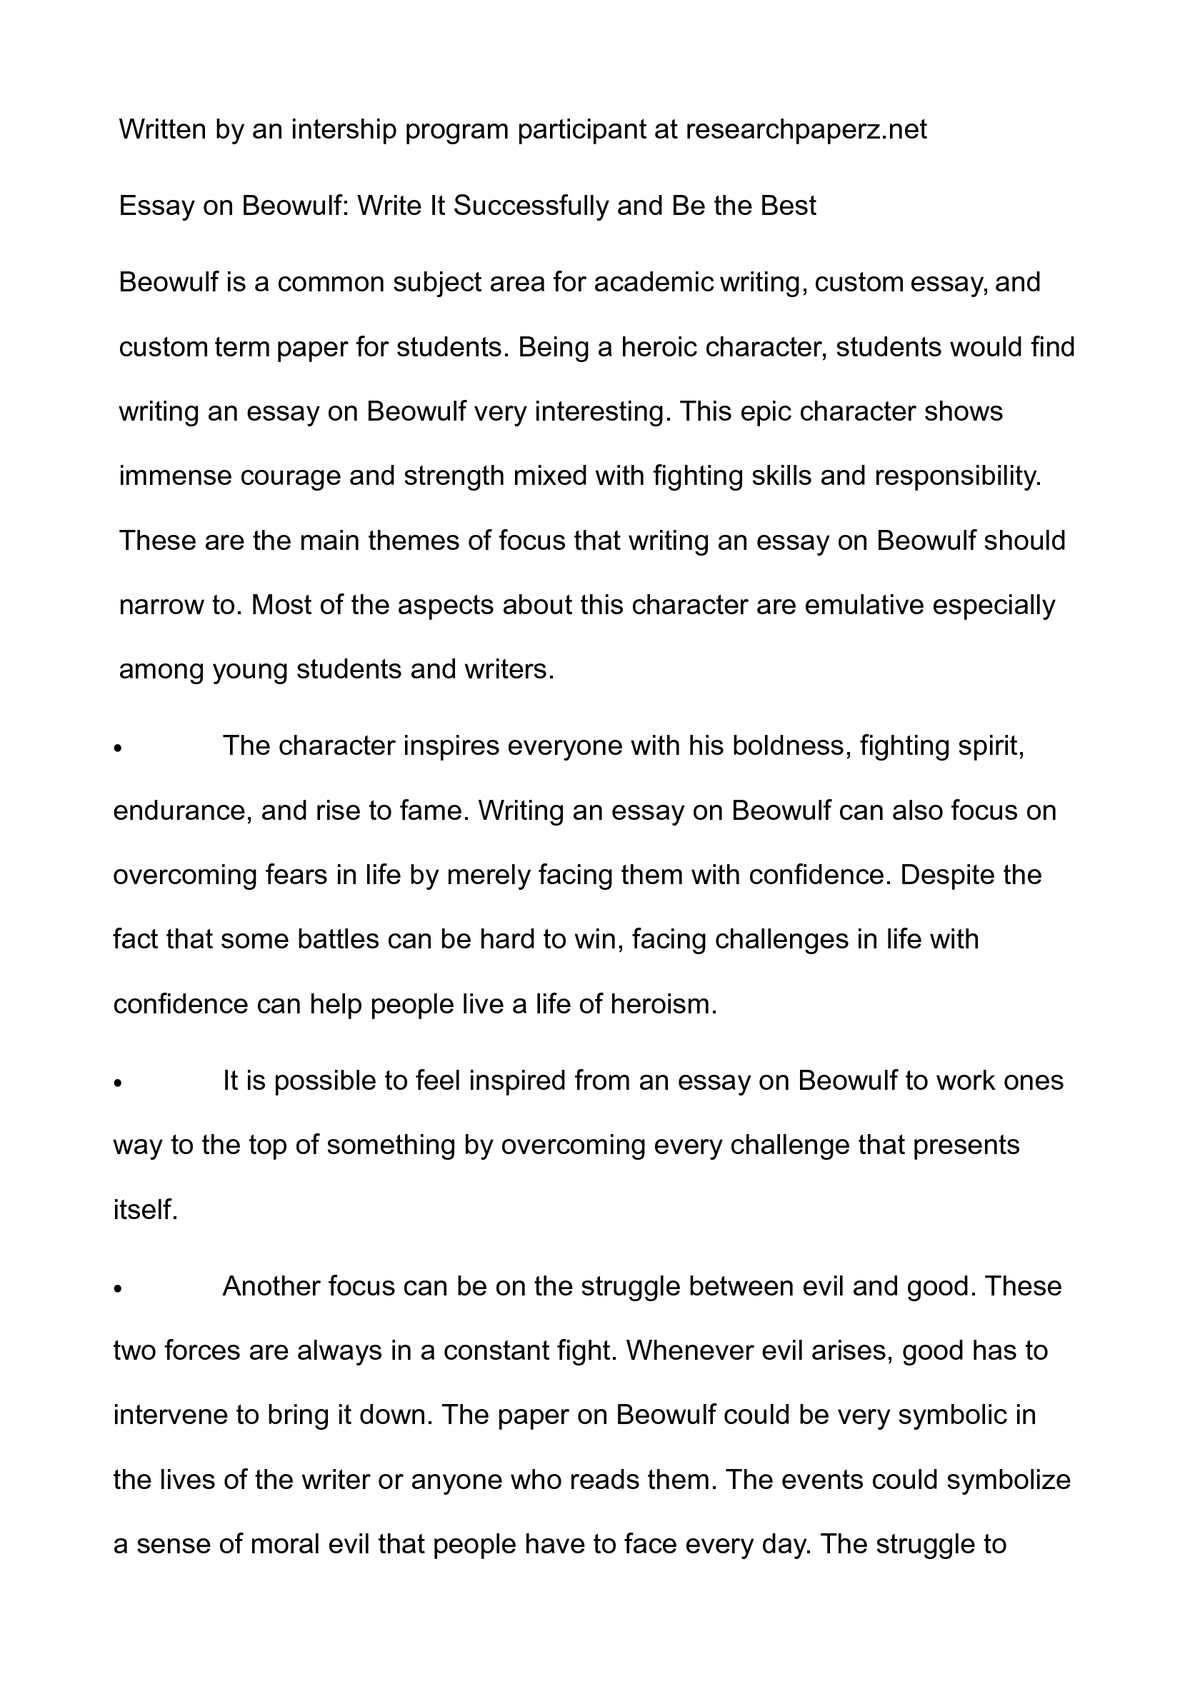 Beowulf essays cover letter economic support specialist